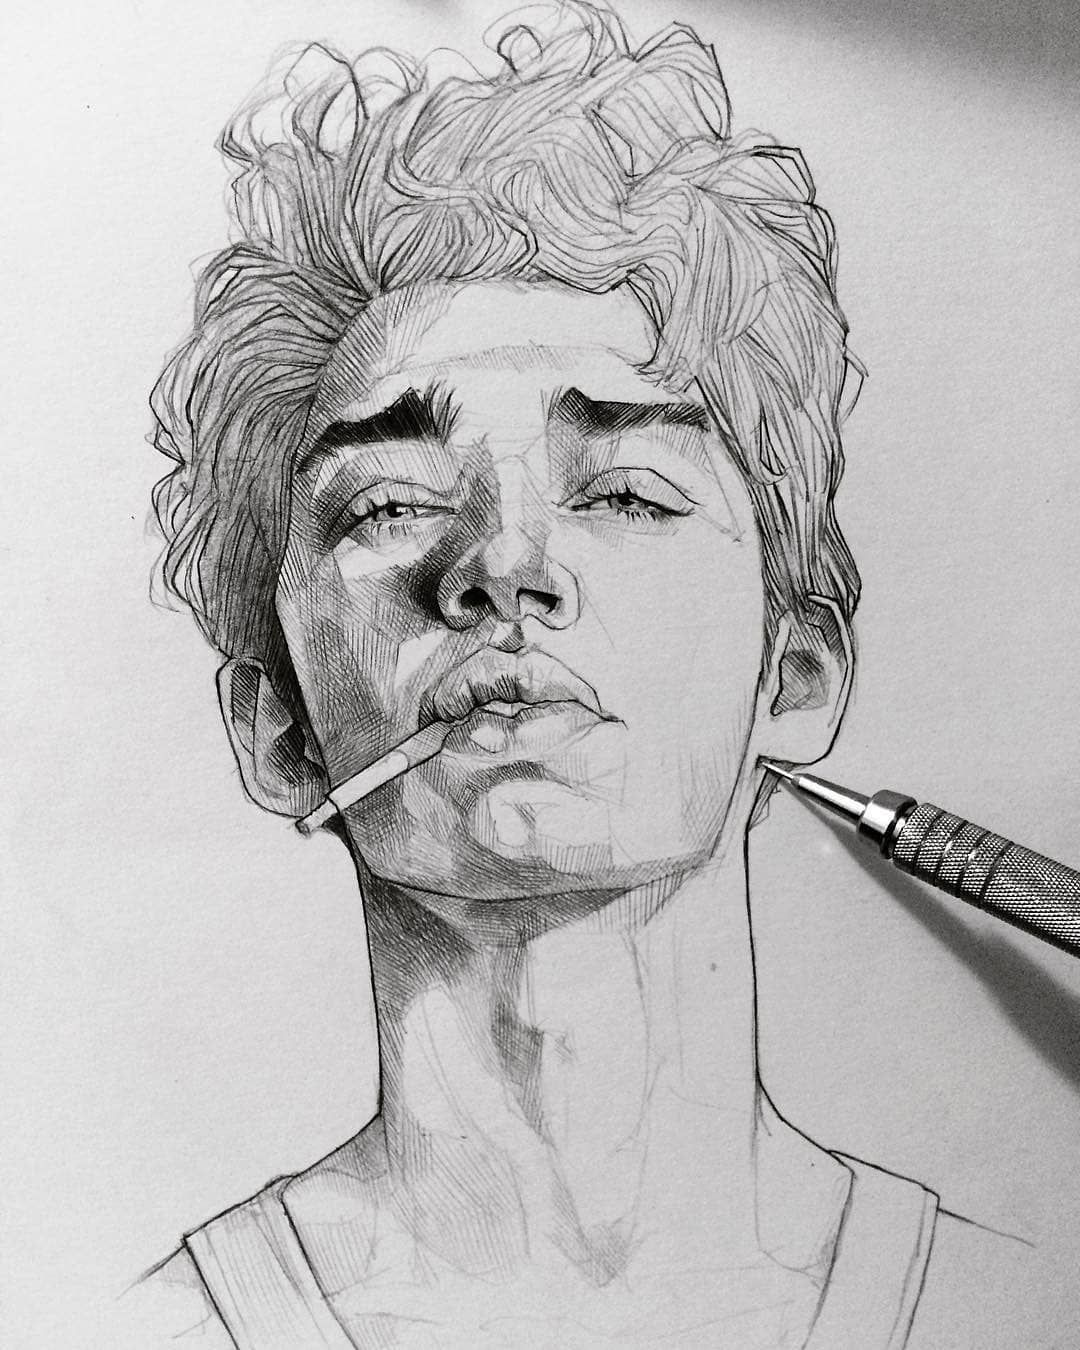 How to drawing how to make an awesome pencil sketch of any photograph pencil pencildrawings drawings artdrawings desenhos zeichnen dessin dibujos